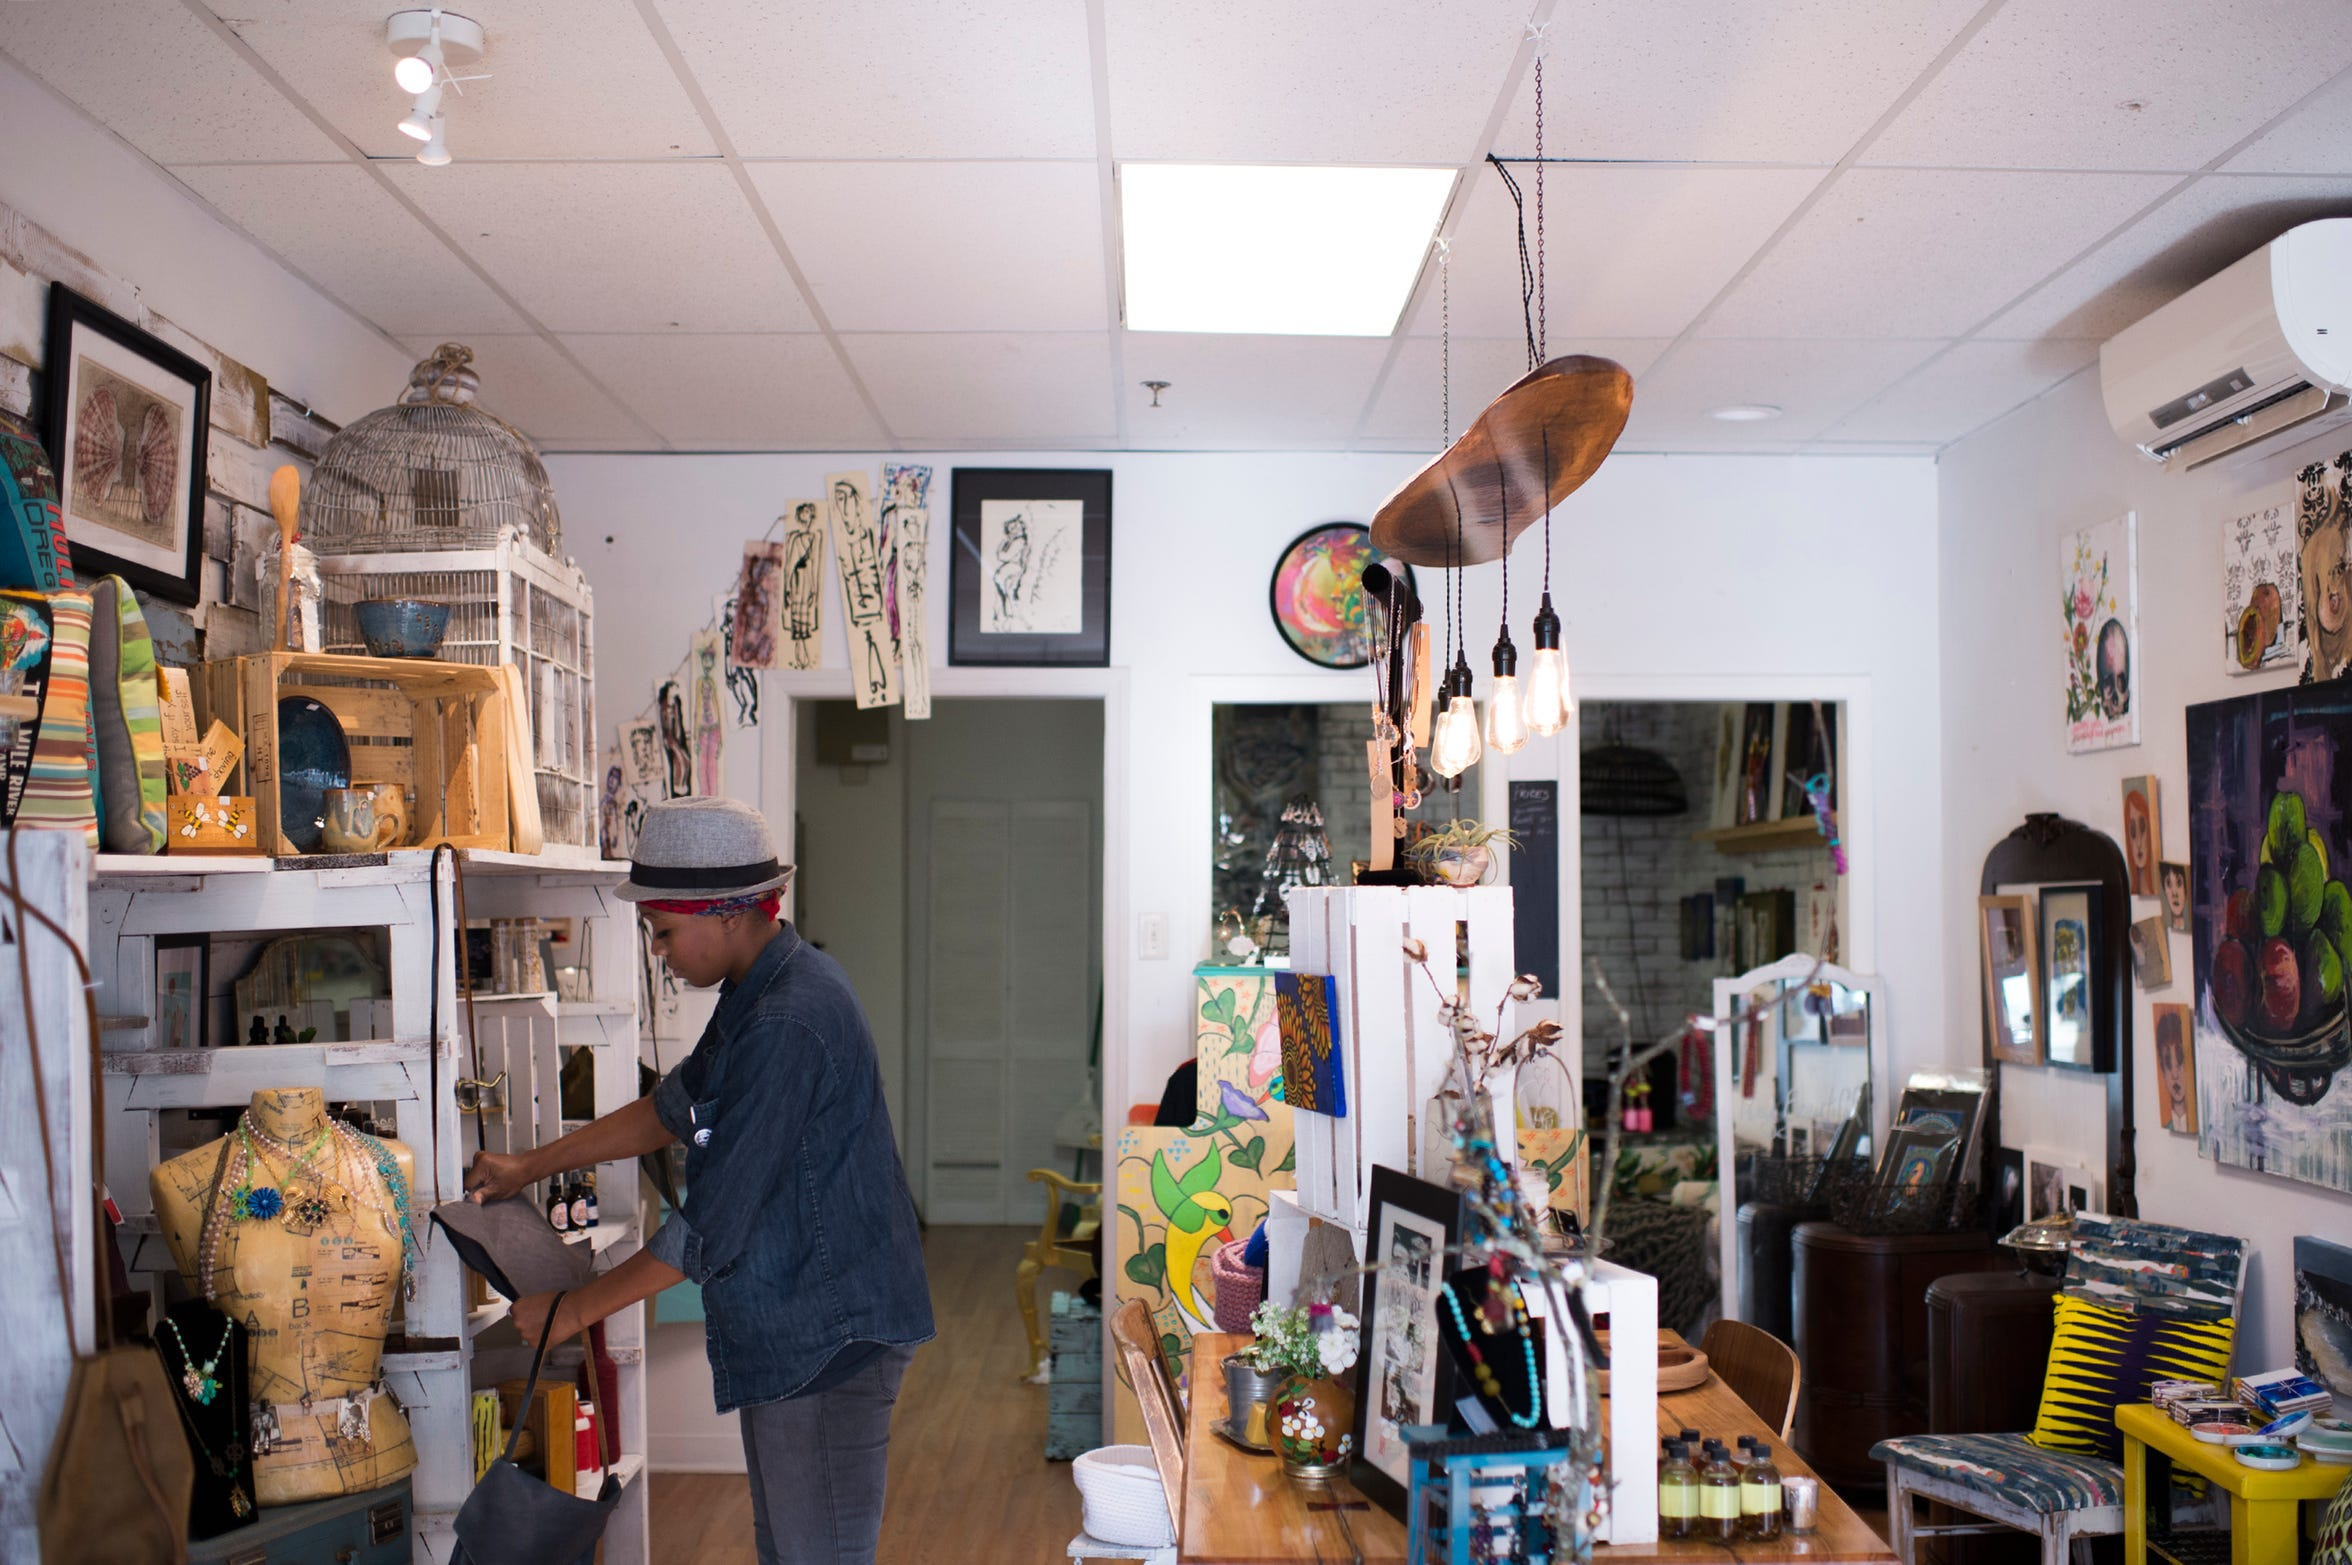 MADE. owner Jamilah Damiani inside her shop Tuesday, Oct. 16, 2018 in Woodbury, N.J.